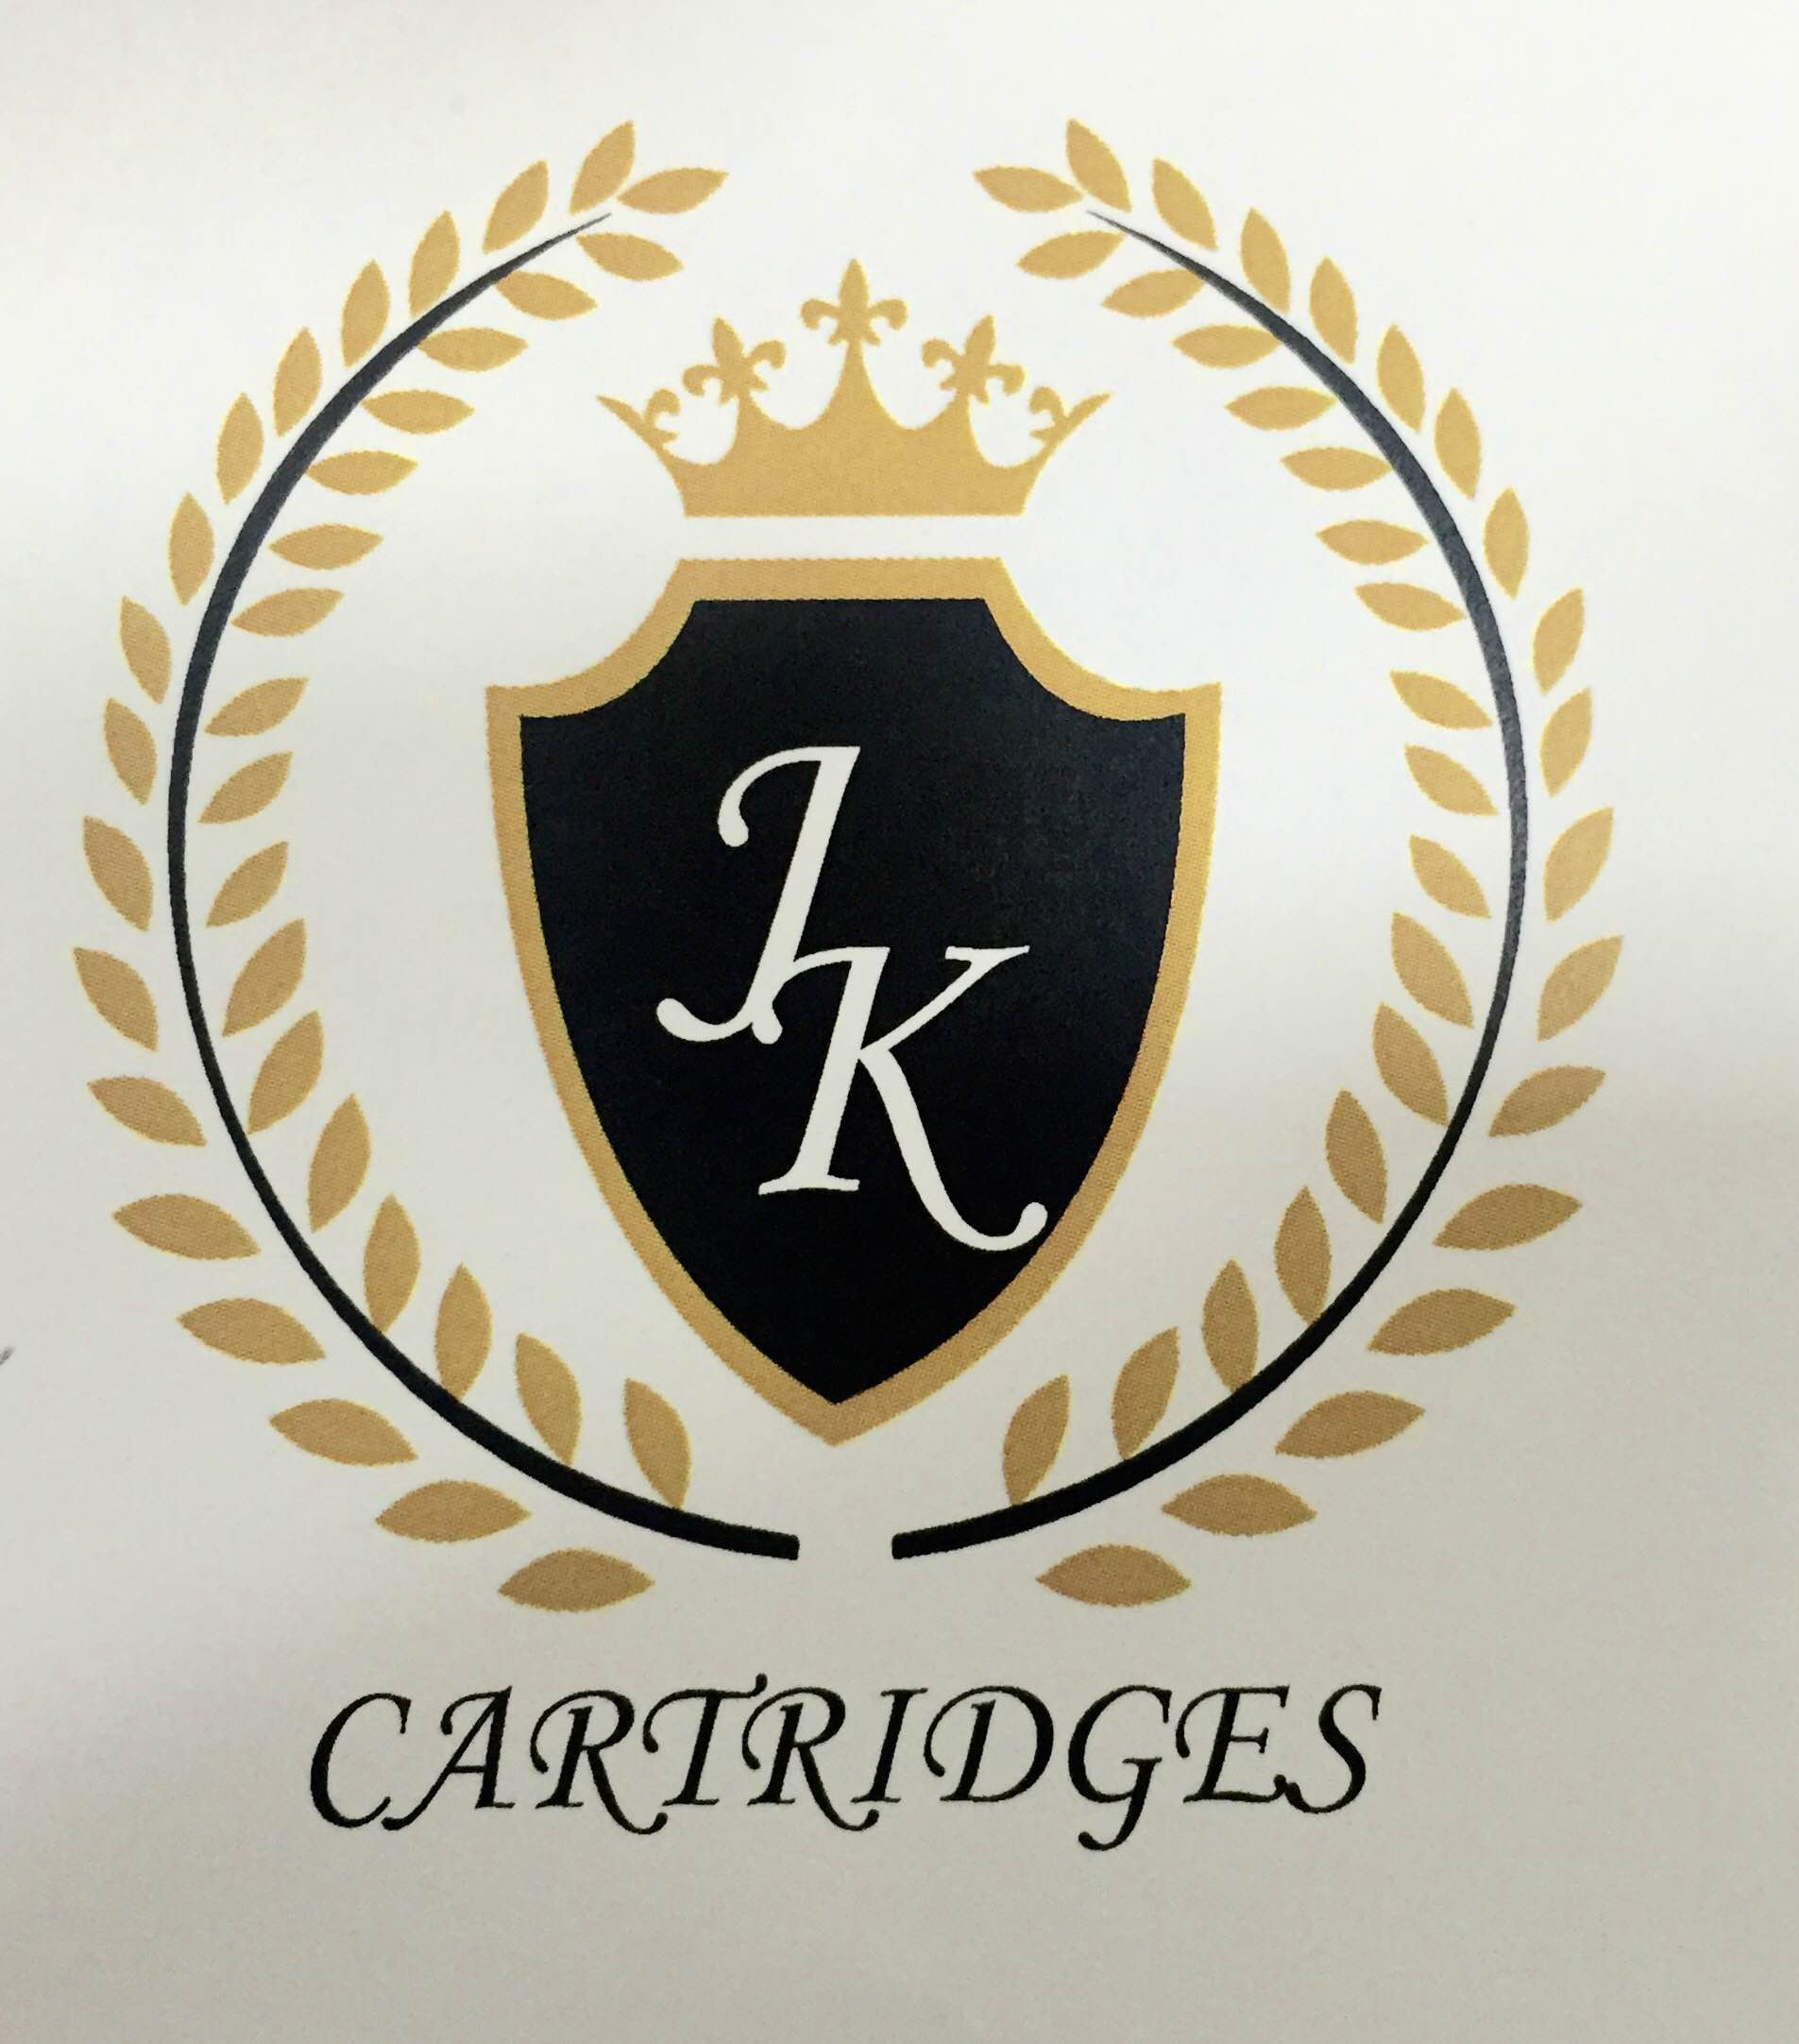 JK CARTRIDGE